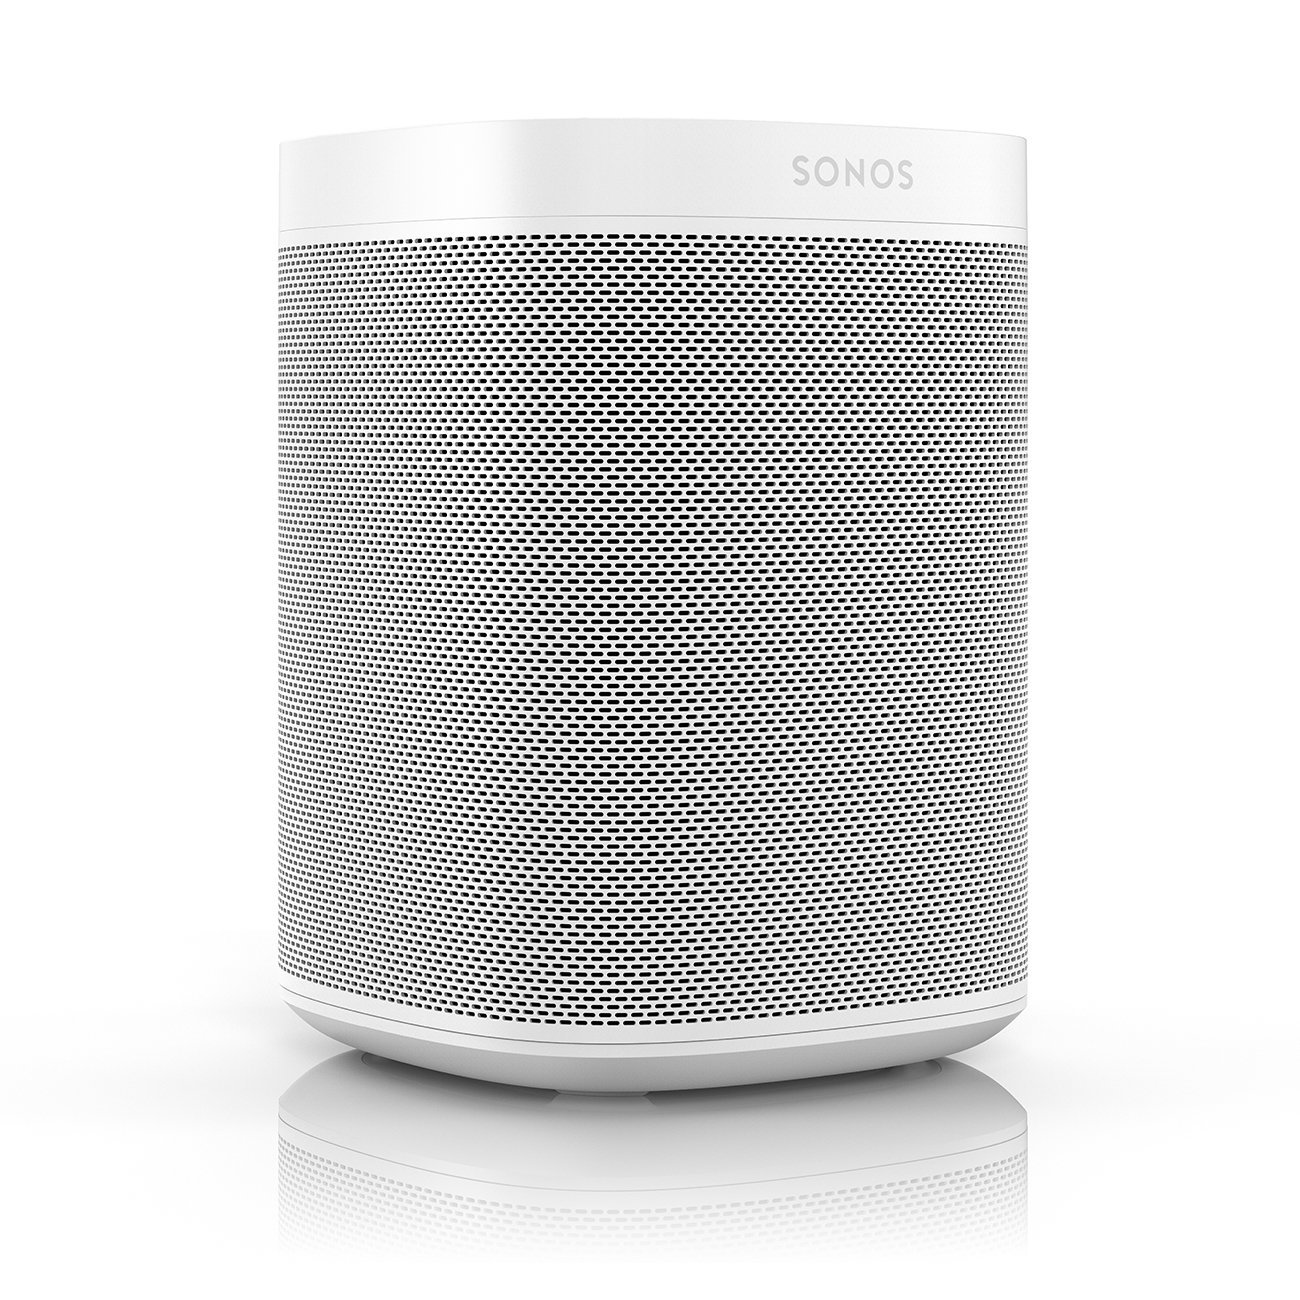 sonos one amazon alexa smart home